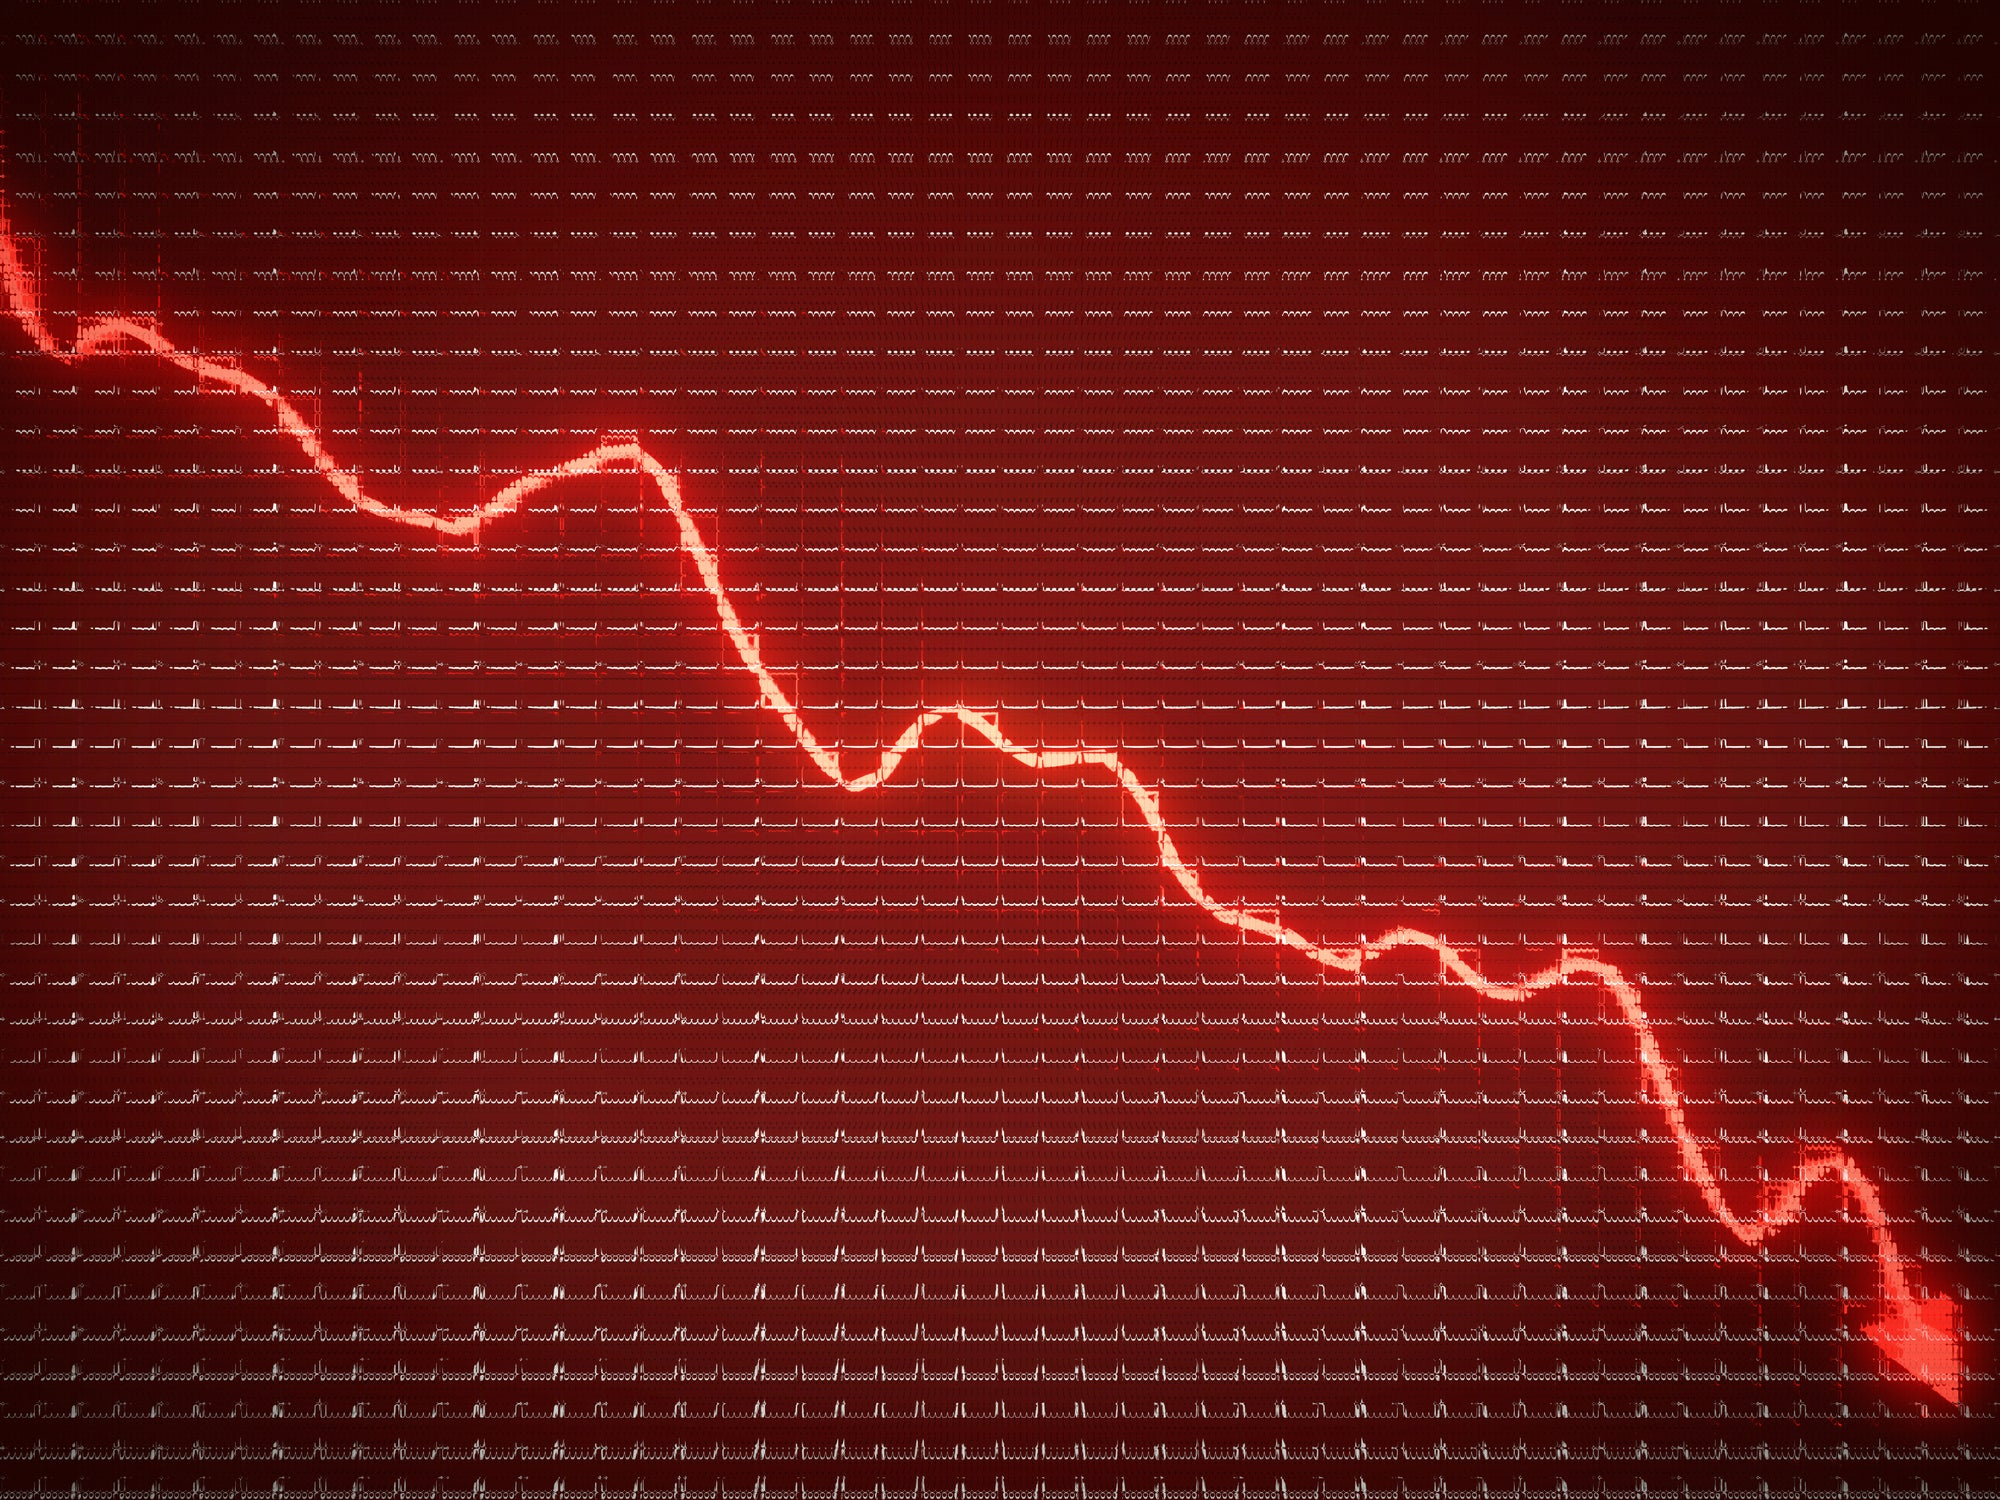 Why Hyliion Holdings Stock Tanked 9% Today